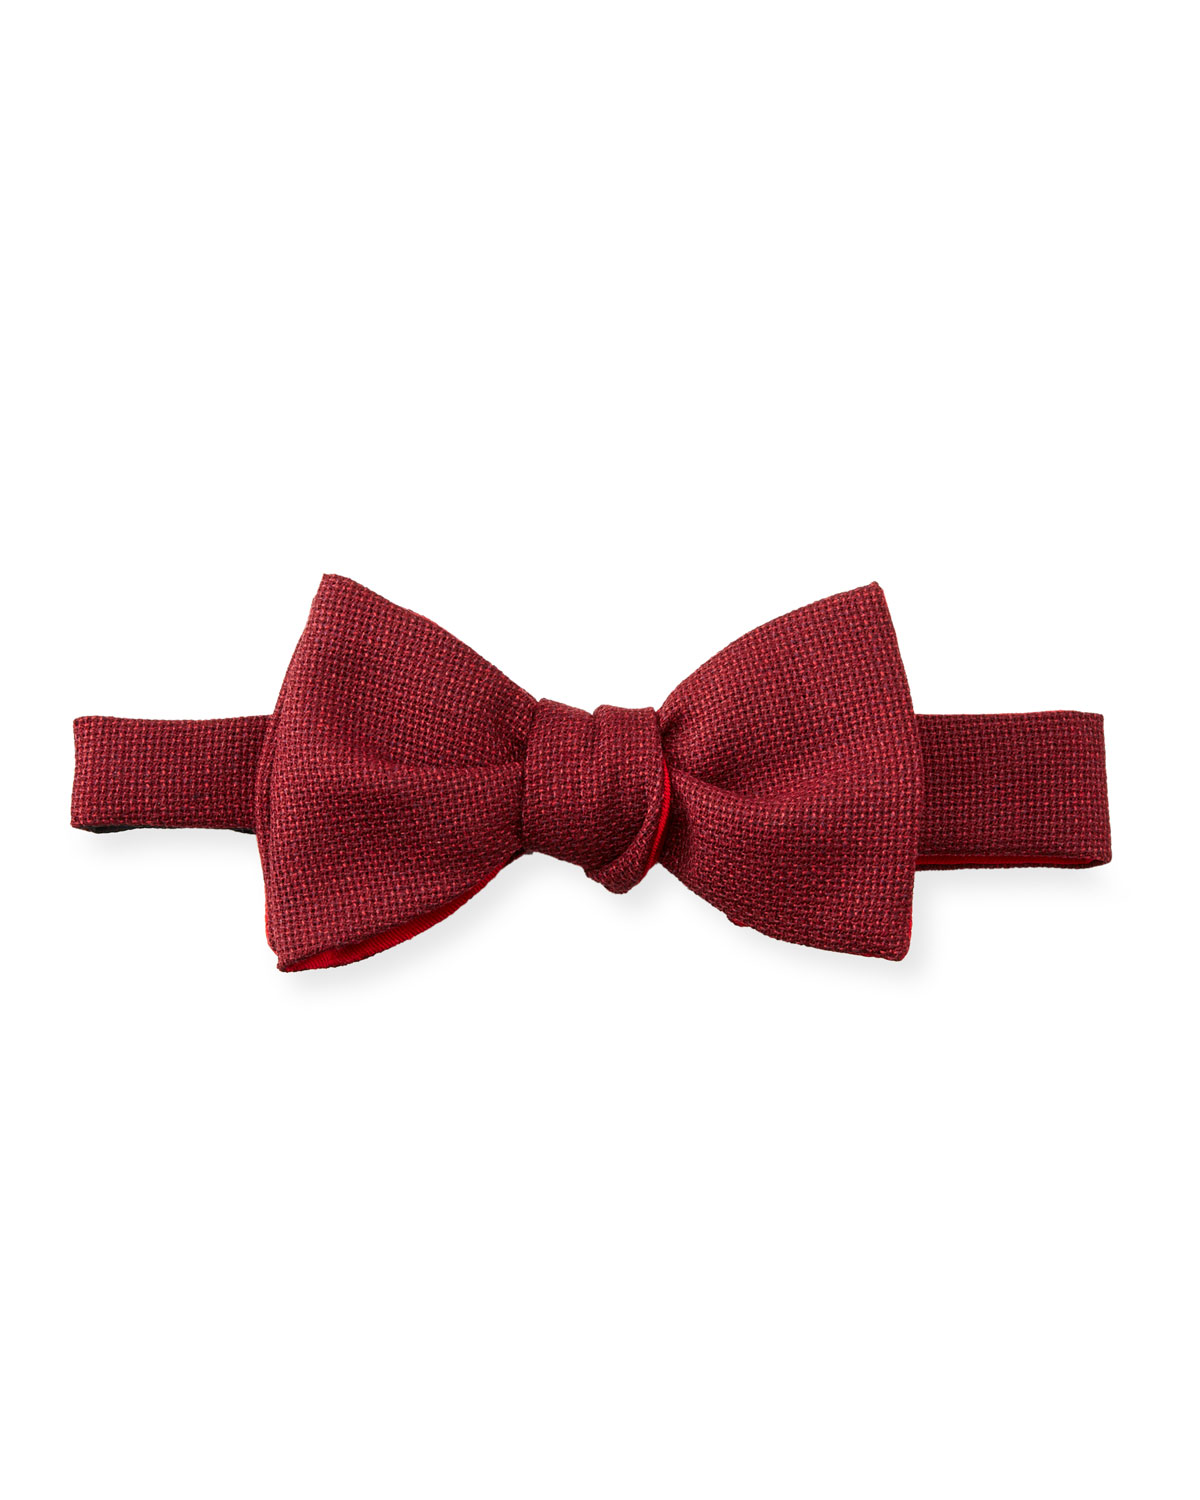 Maille Bow Tie